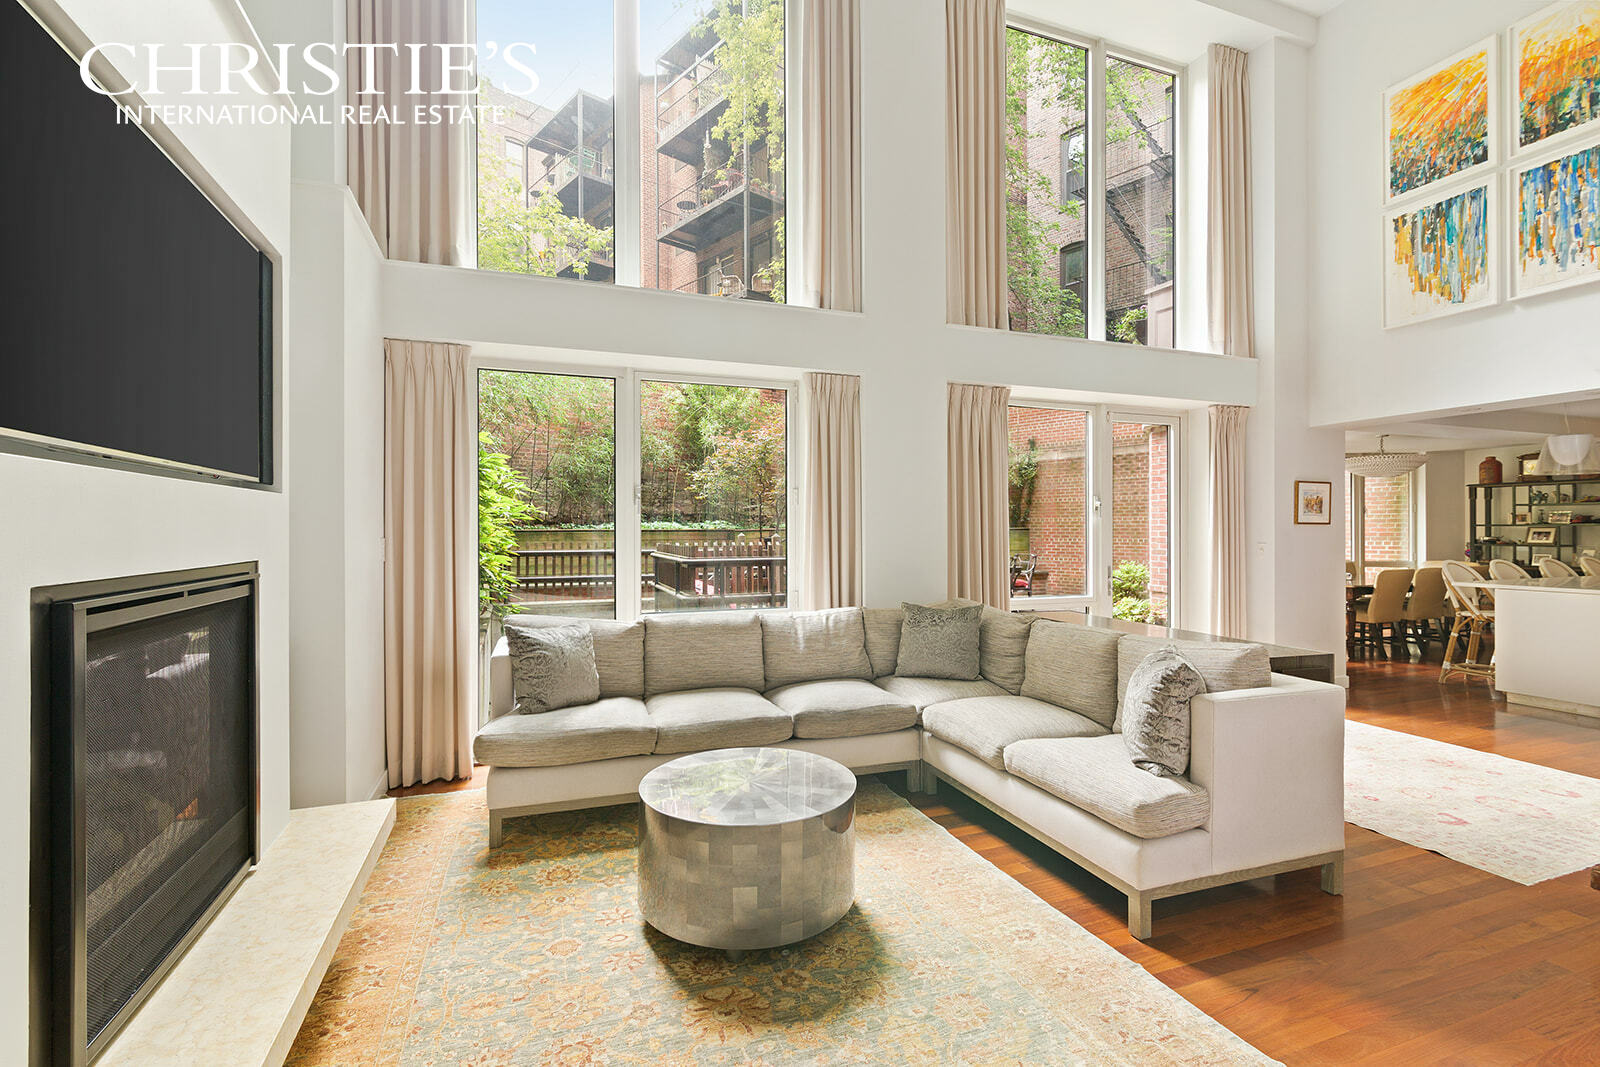 744 GREENWICH ST Townhouse, New York, NY 10014